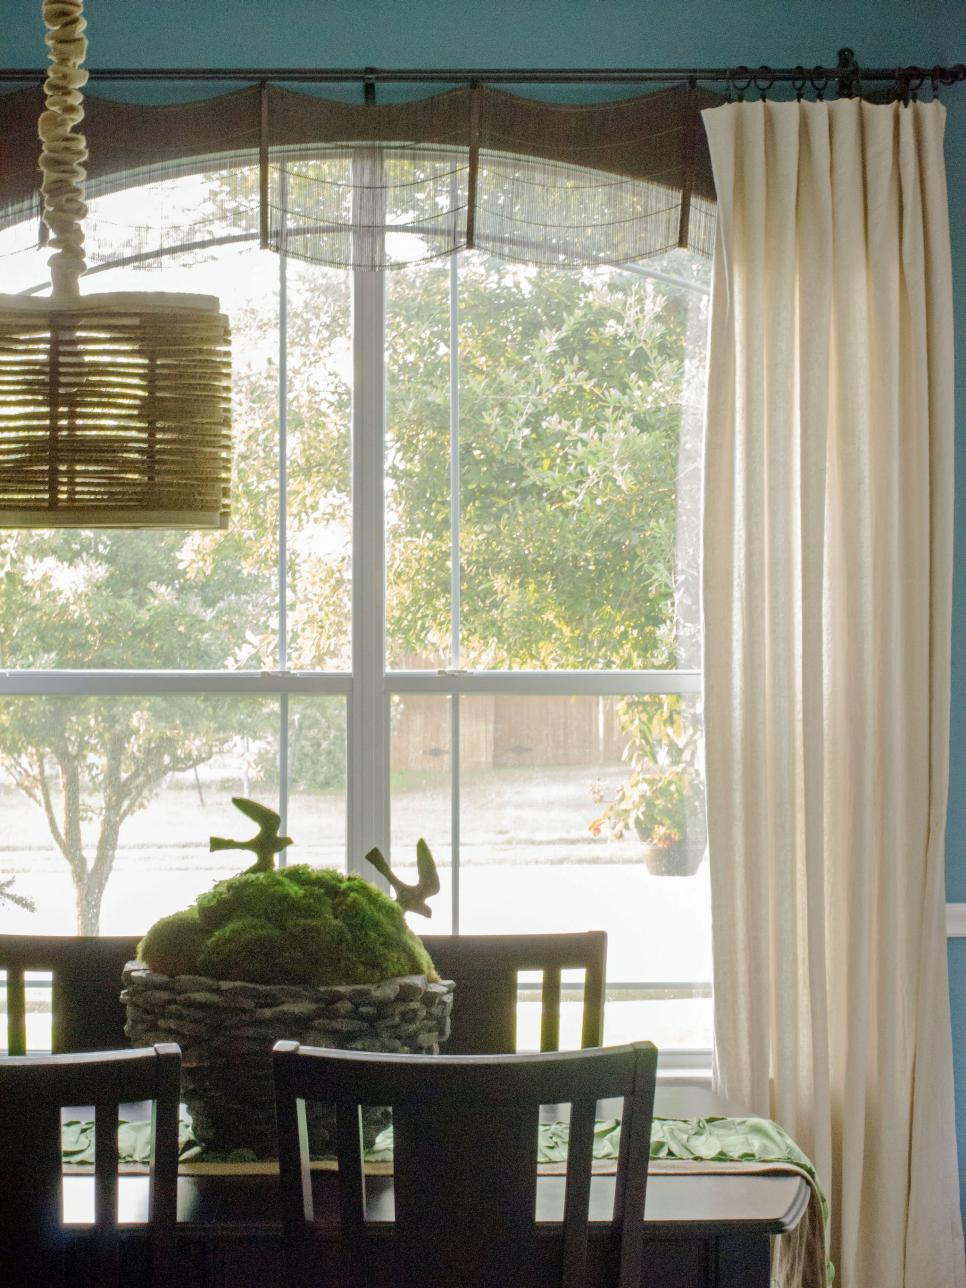 Window treatment ideas hgtv for Picture window ideas